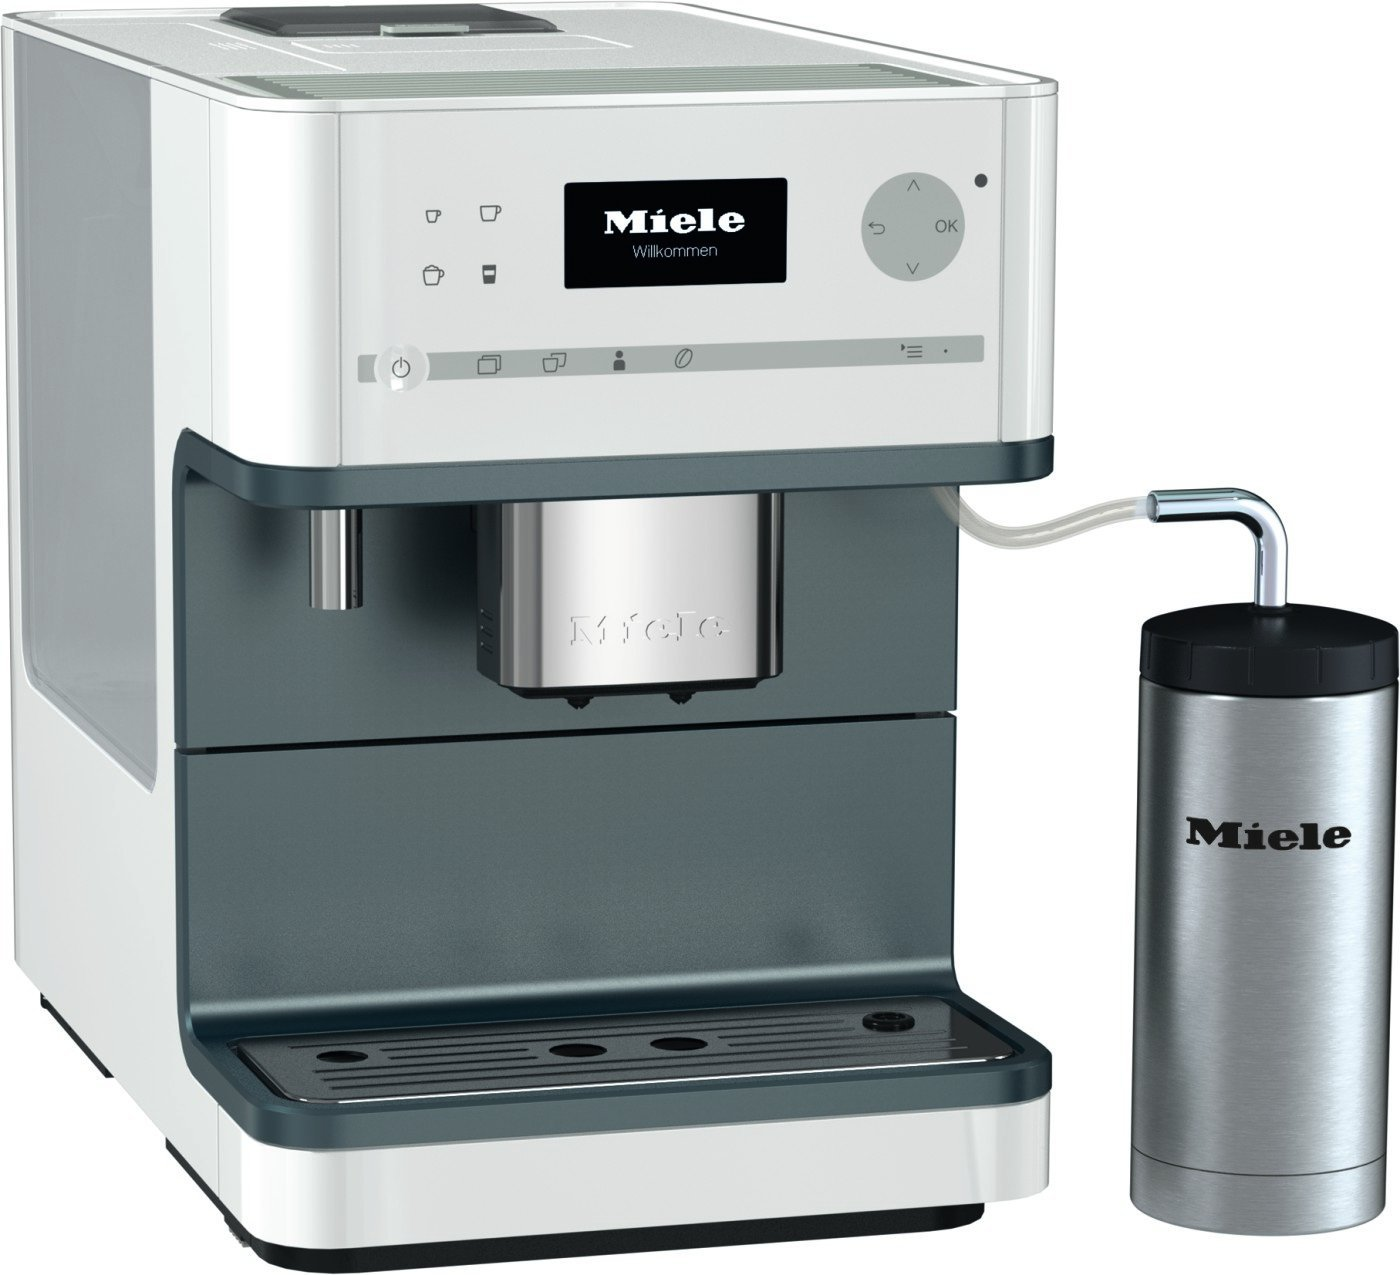 Miele CM6310 - White Coffee Machine, White (Renewed) by Miele